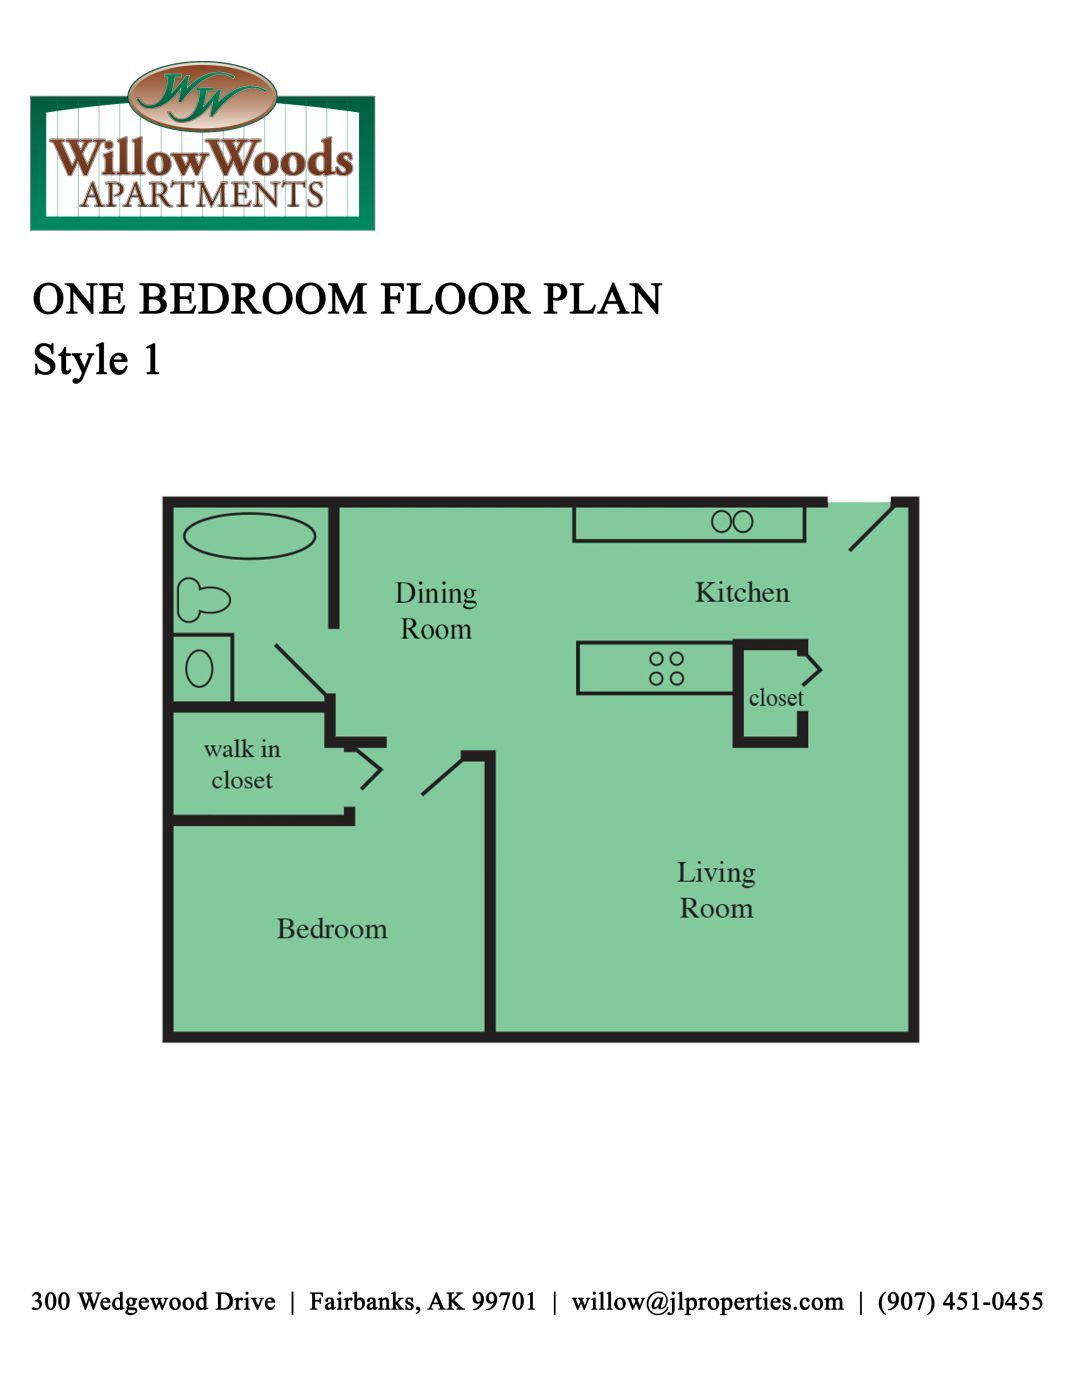 One Bedroom - Style 1